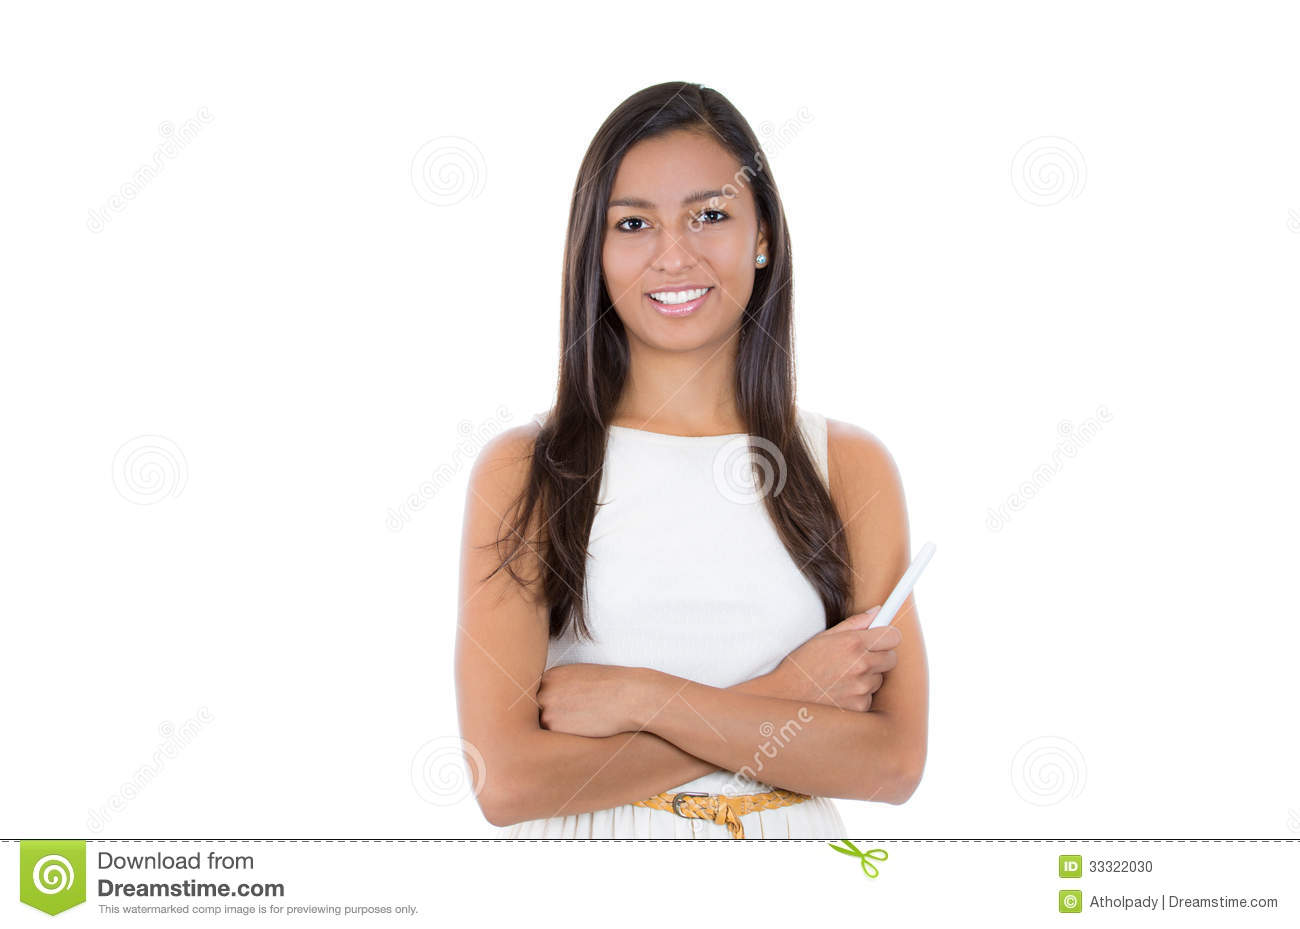 ... confident happy smiling student holding chalk standing in white dress